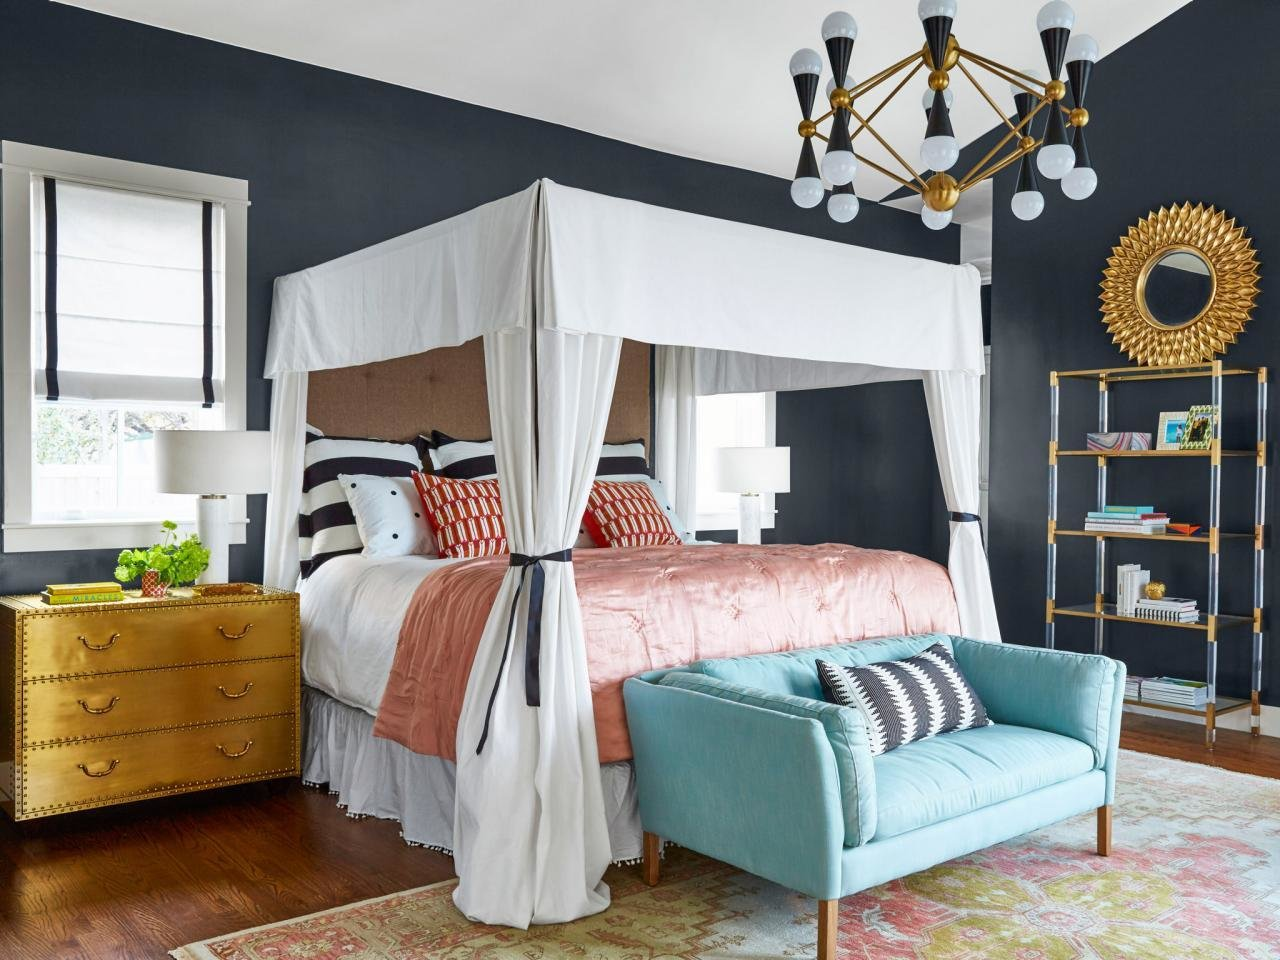 Best Unexpected Bedroom Paint Colors Worth The Design Risk Hgtv S Decorating Design Blog Hgtv With Pictures